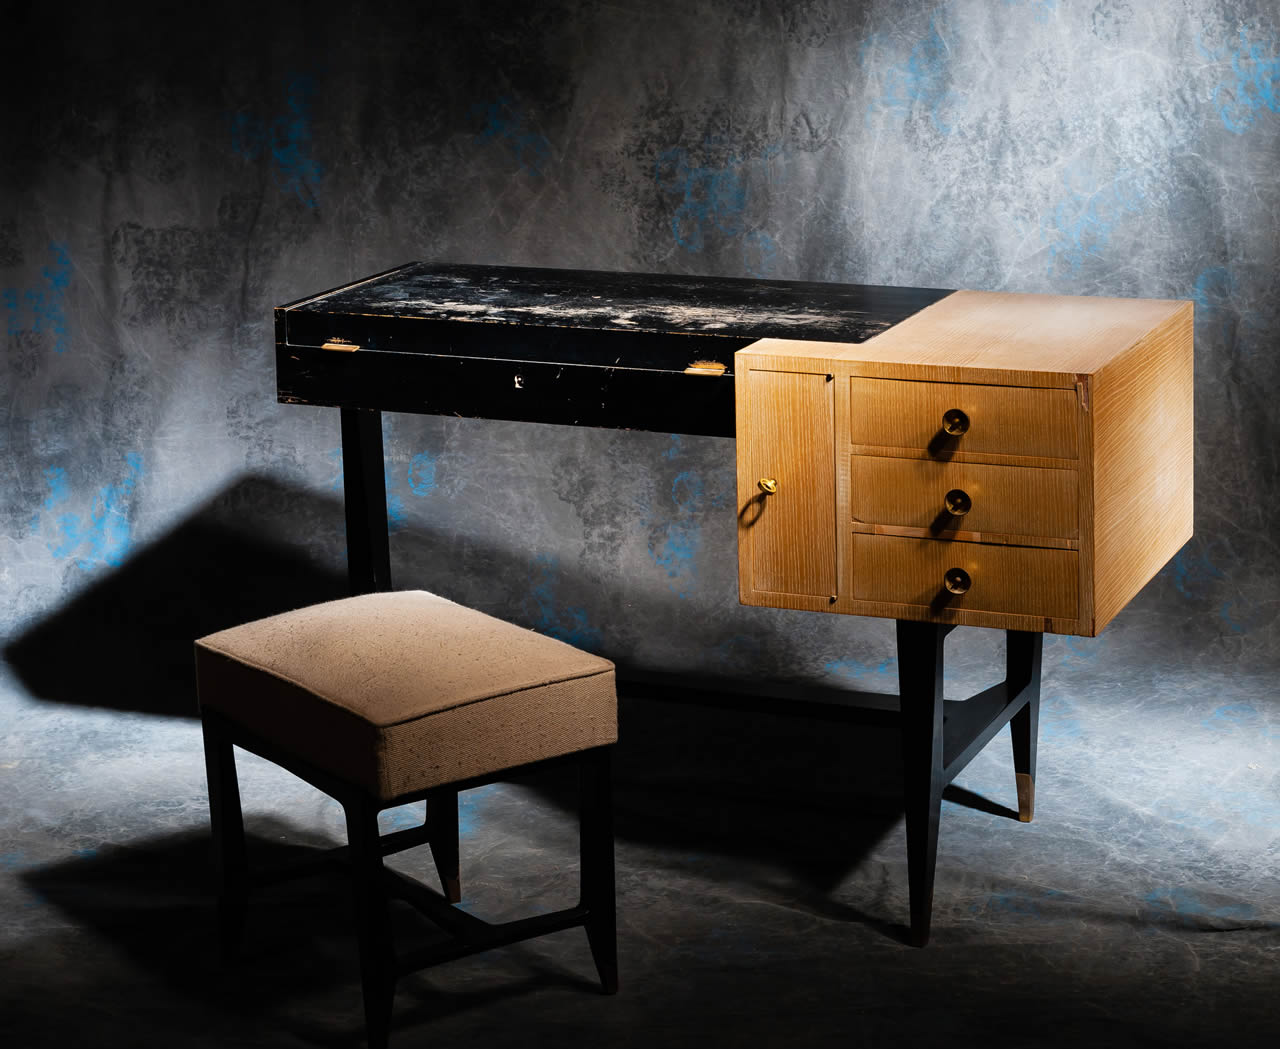 meubles anciens bureau coiffeuse ann es 50 bertrand klein antiquit s. Black Bedroom Furniture Sets. Home Design Ideas